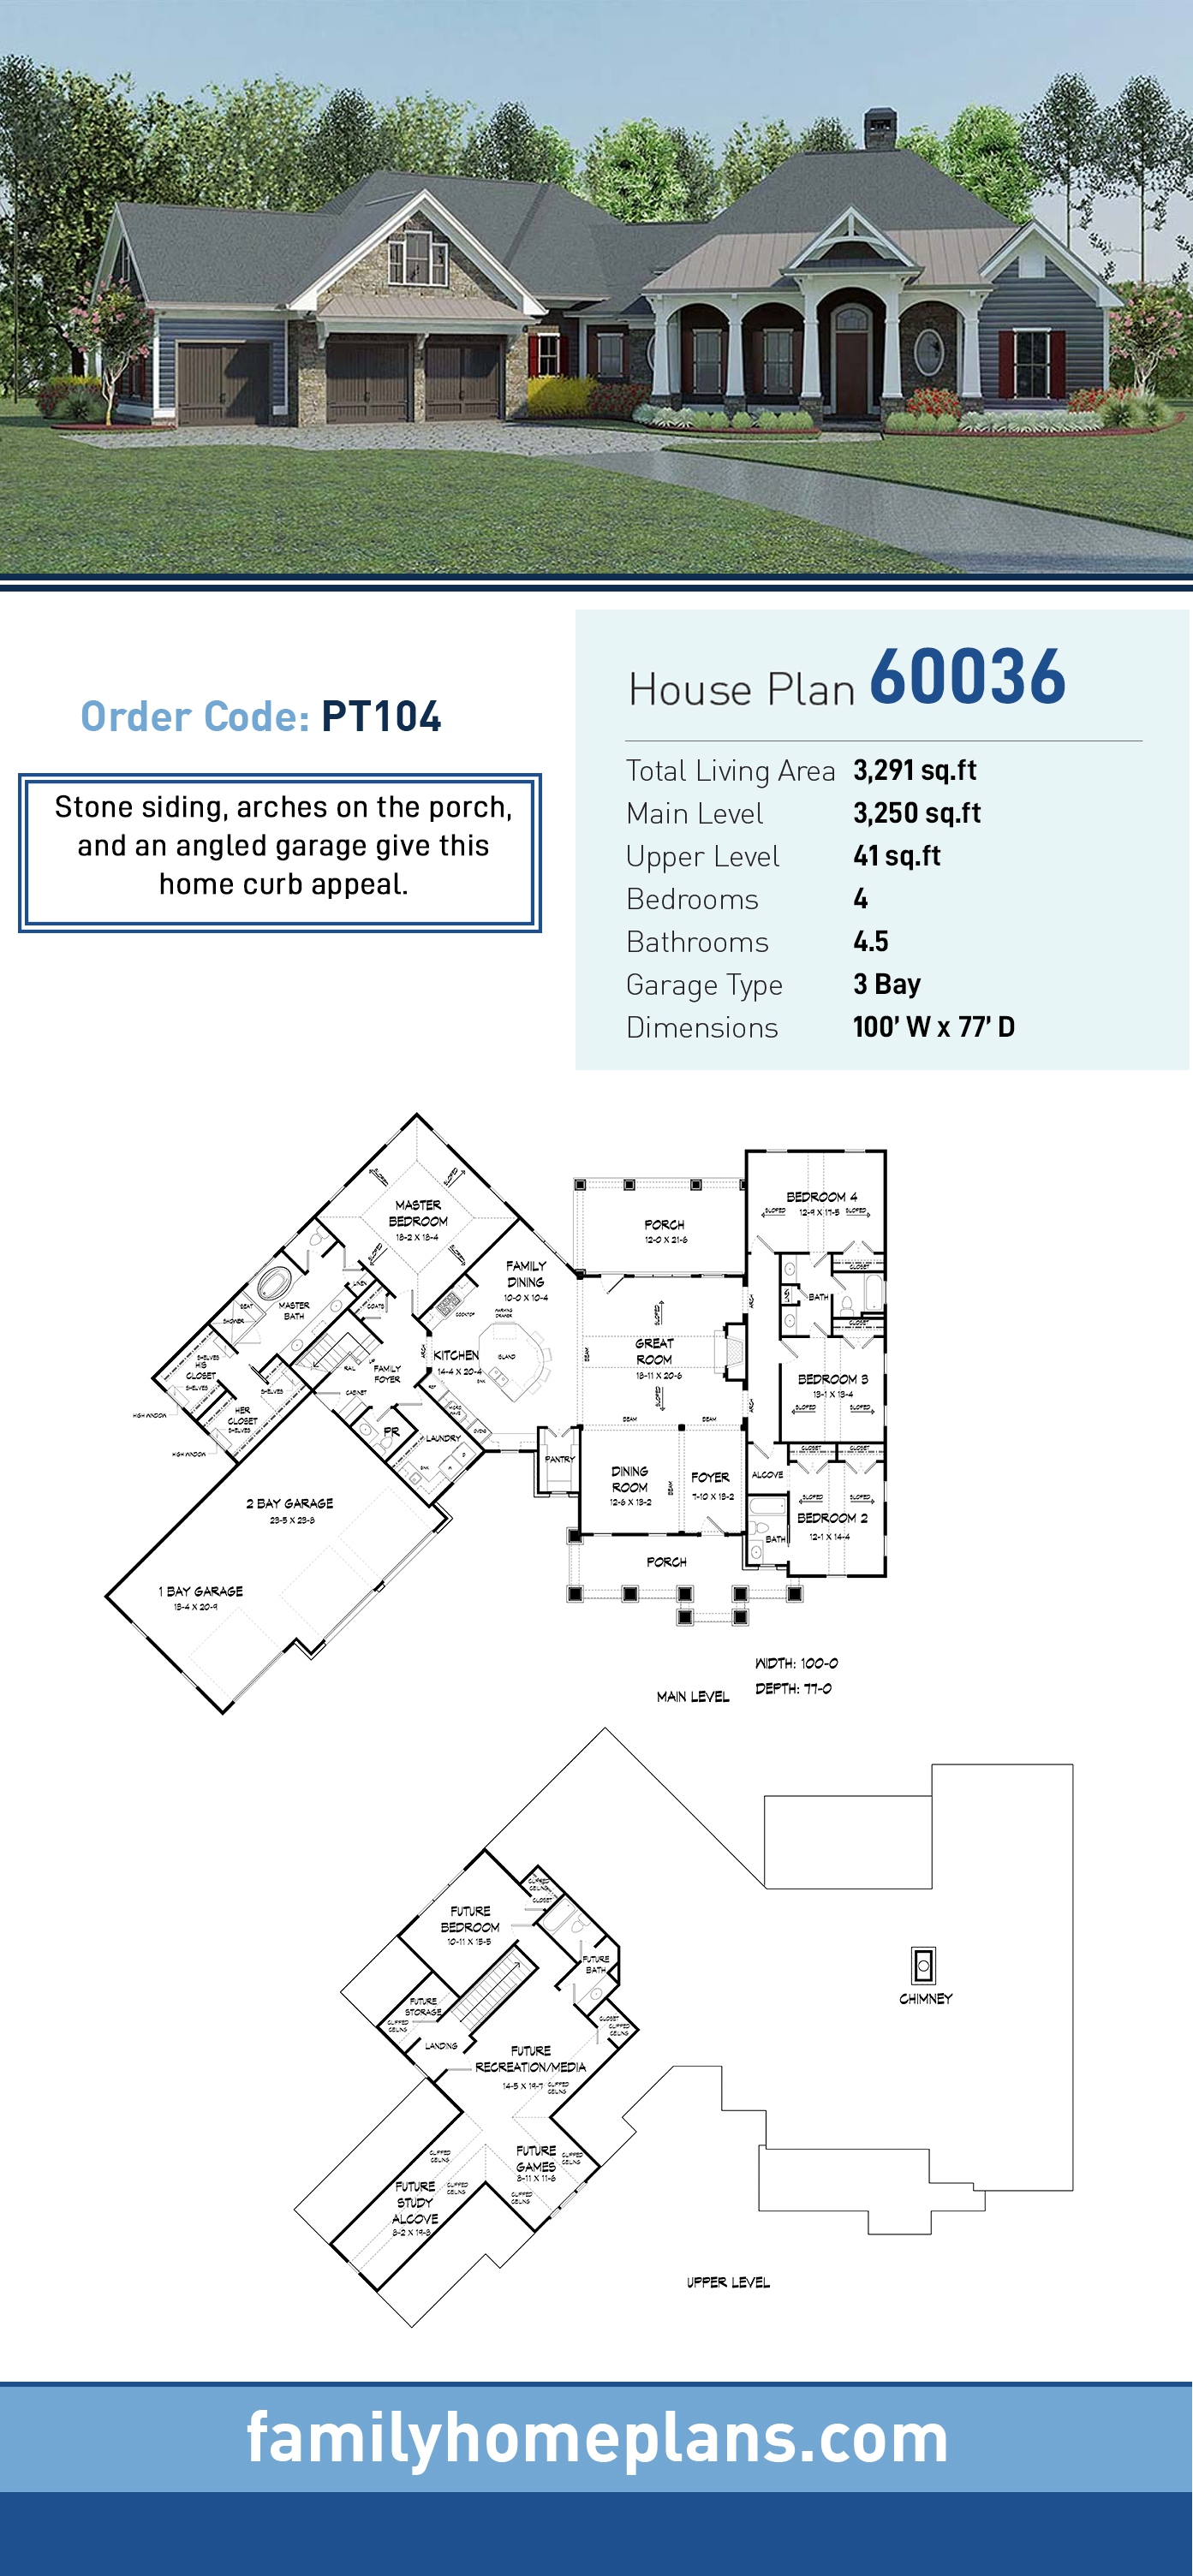 Craftsman , Traditional House Plan 60036 with 4 Beds, 5 Baths, 3 Car Garage